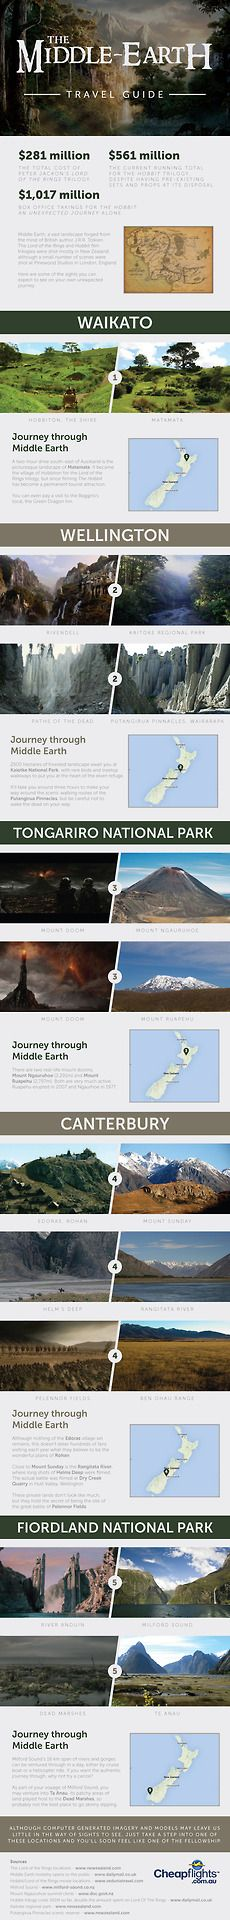 The Middle-Earth Travel Guide (viaNeoMam Infographic Studios, h/t Cheapflights.com.auand GalleyCat)